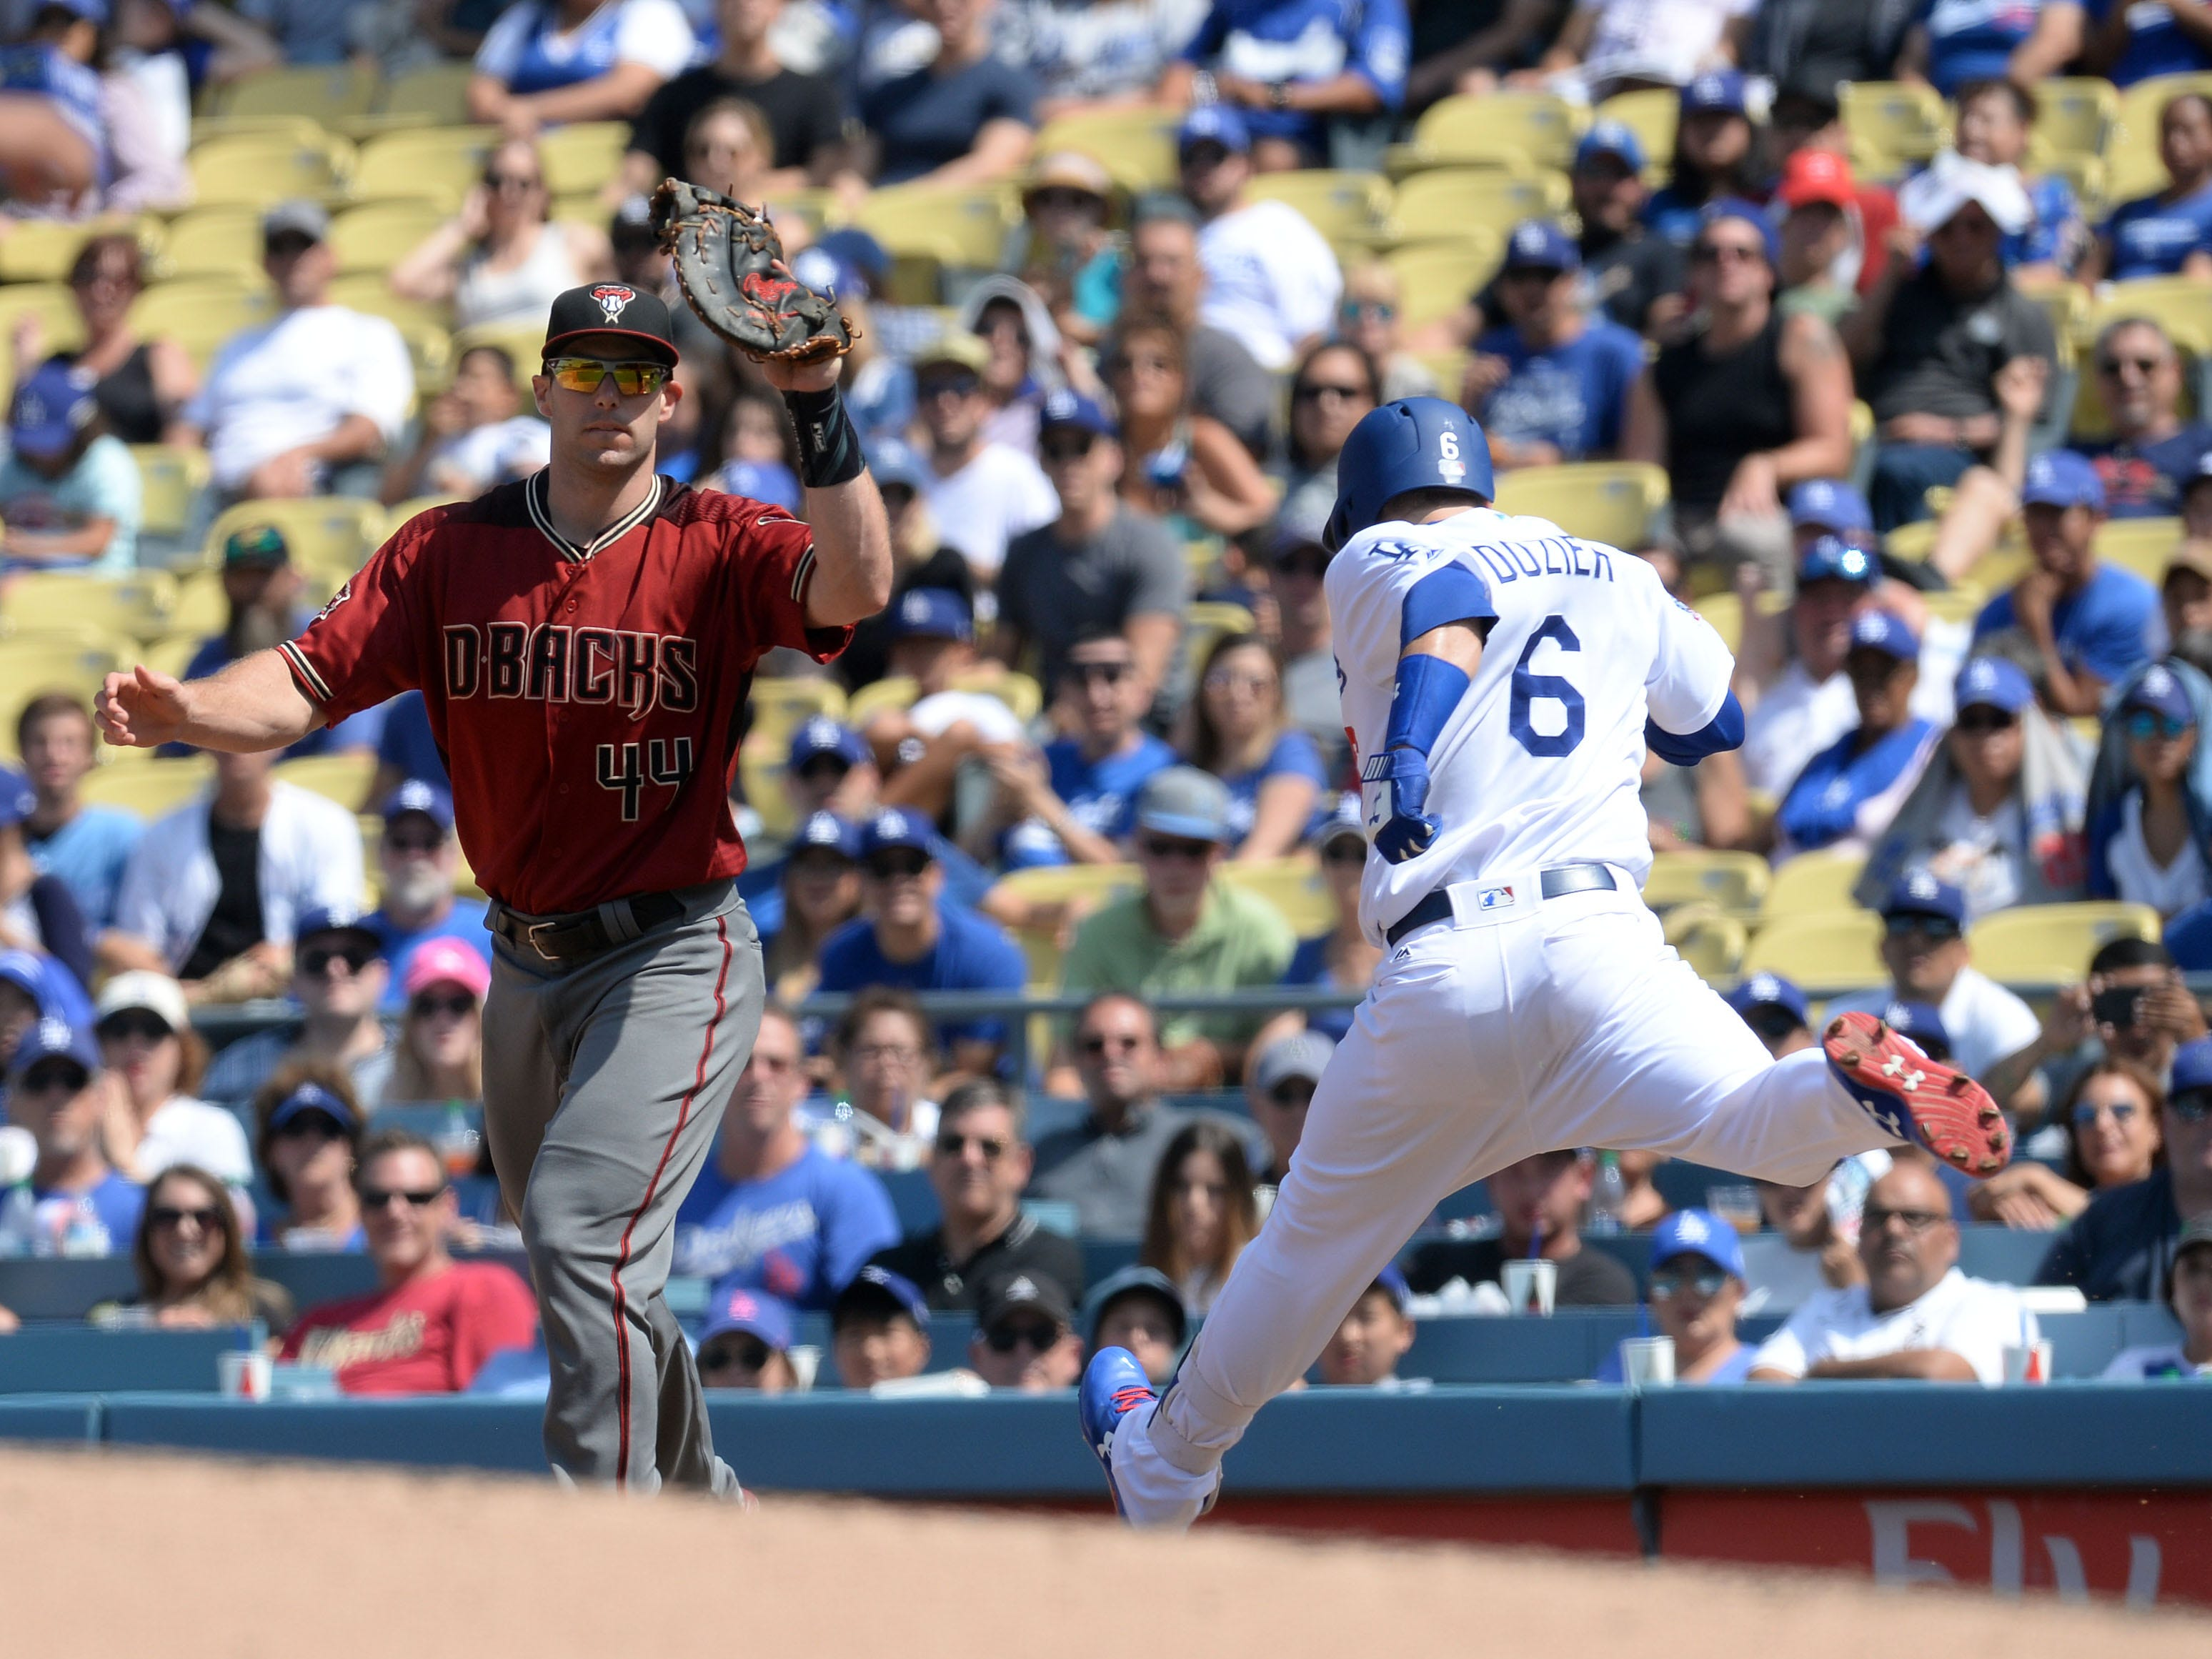 September 2, 2018; Los Angeles, CA, USA; Los Angeles Dodgers second baseman Brian Dozier (6) is out at first against Arizona Diamondbacks first baseman Paul Goldschmidt (44) in the fourth inning at Dodger Stadium. Mandatory Credit: Gary A. Vasquez-USA TODAY Sports